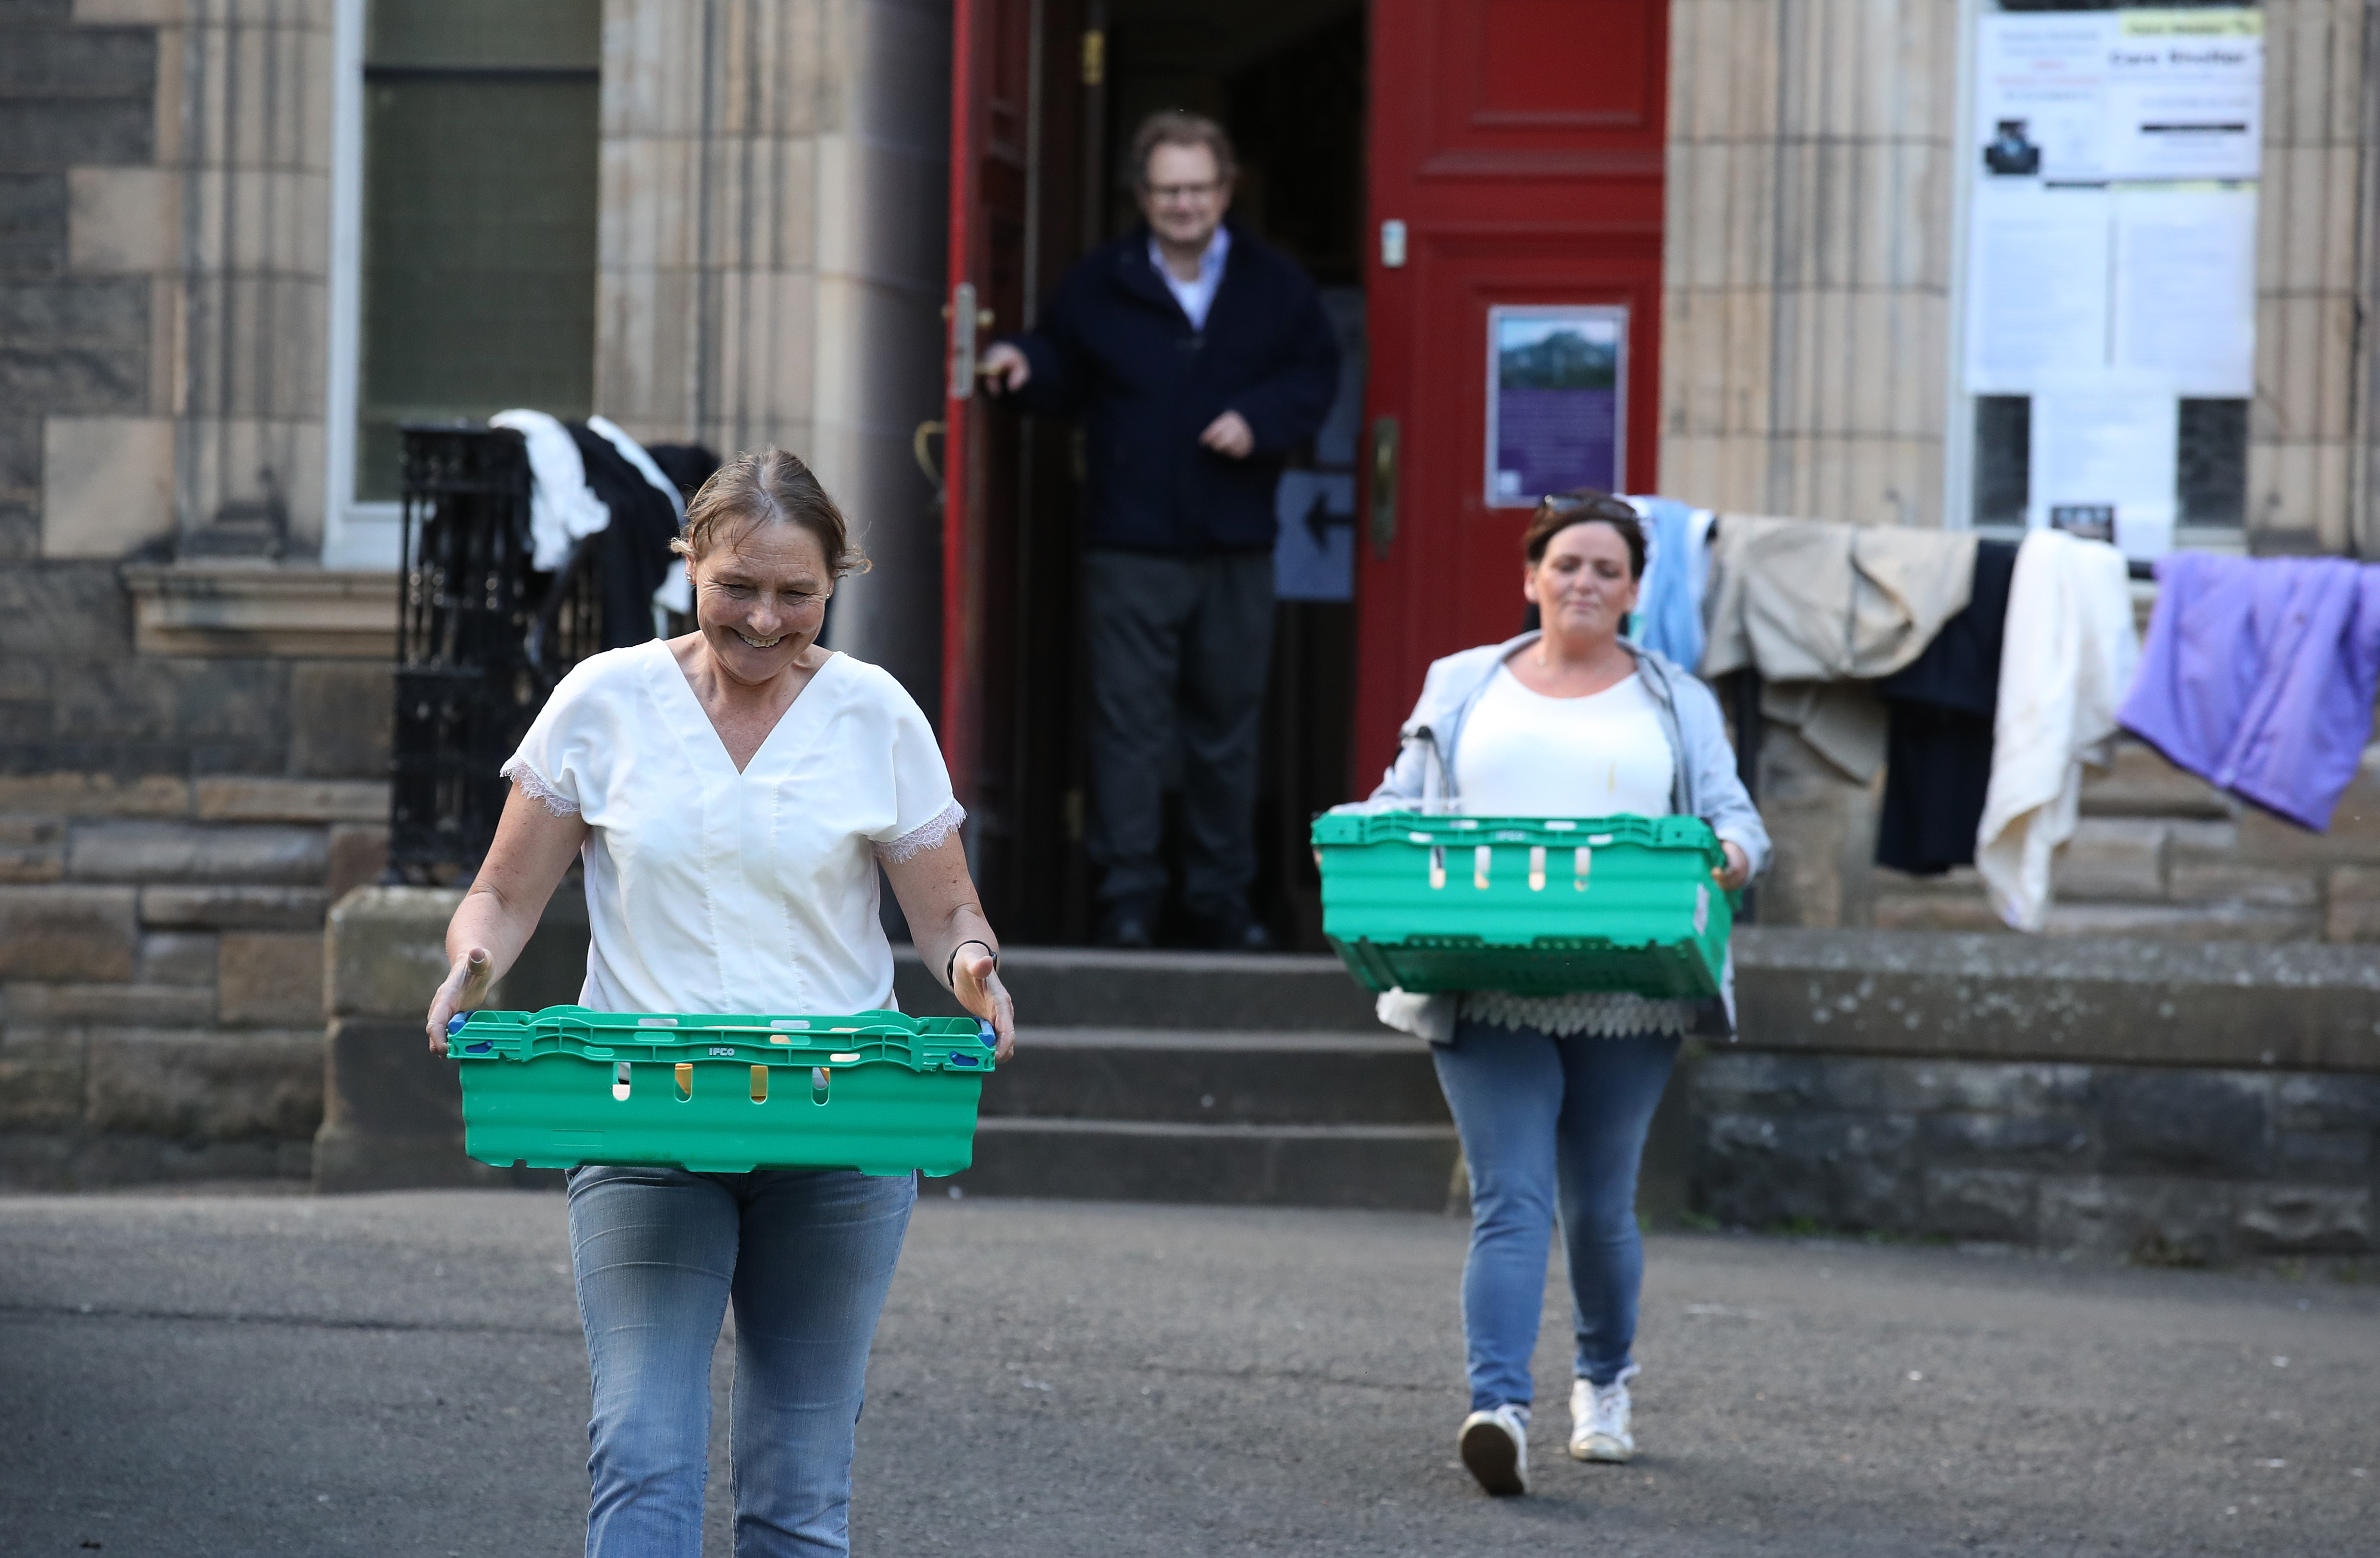 Volunteers from the Step to Hope charity carry meals to give to those who want one in the grounds of The Parish Church of St Cuthbert in Edinburgh. The charity in Edinburgh which is handing out meals to the homeless, normally meals are served inside the church, however due to restrictions these are being handed outside to the homeless as the UK continues in lockdown to help curb the spread of the coronavirus.